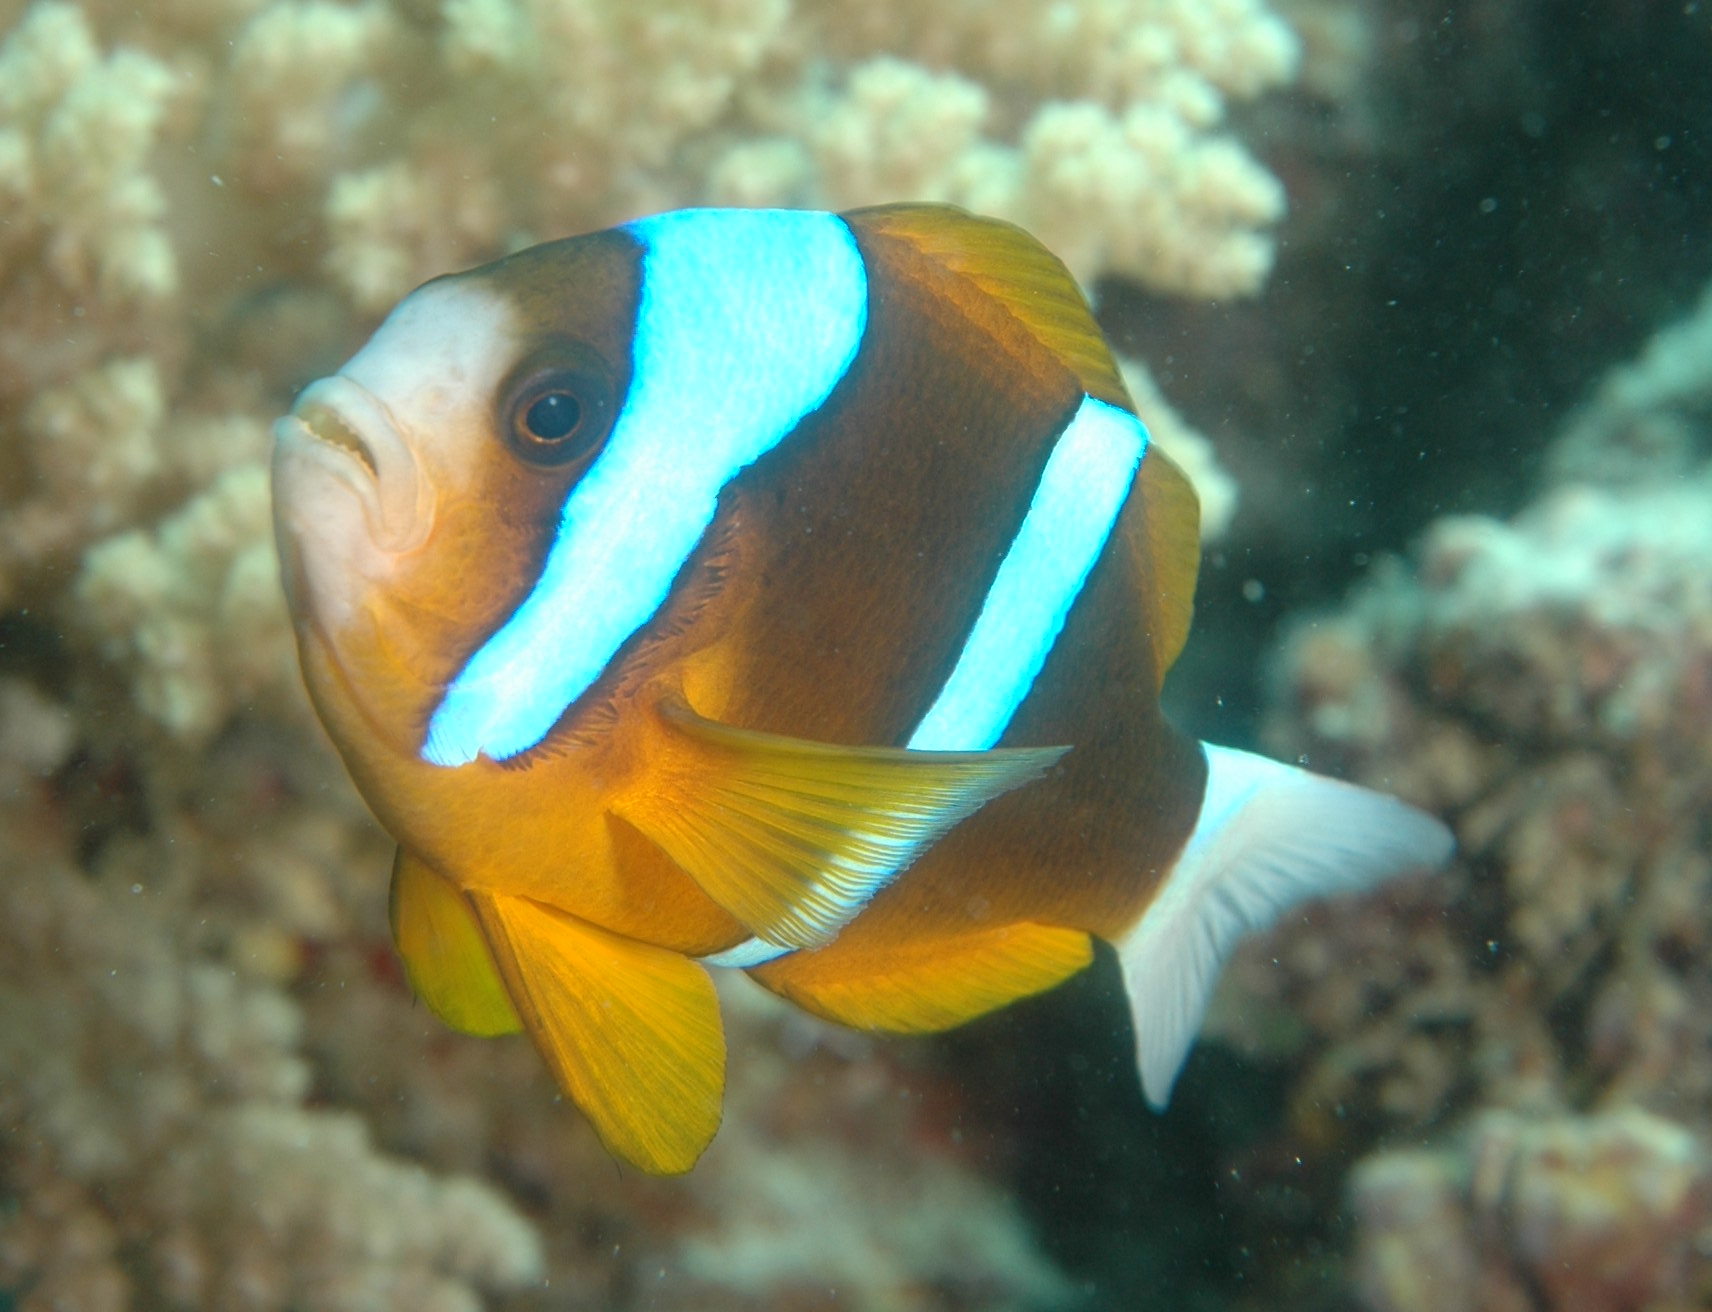 Amphiprion akindynos - Wikipedia